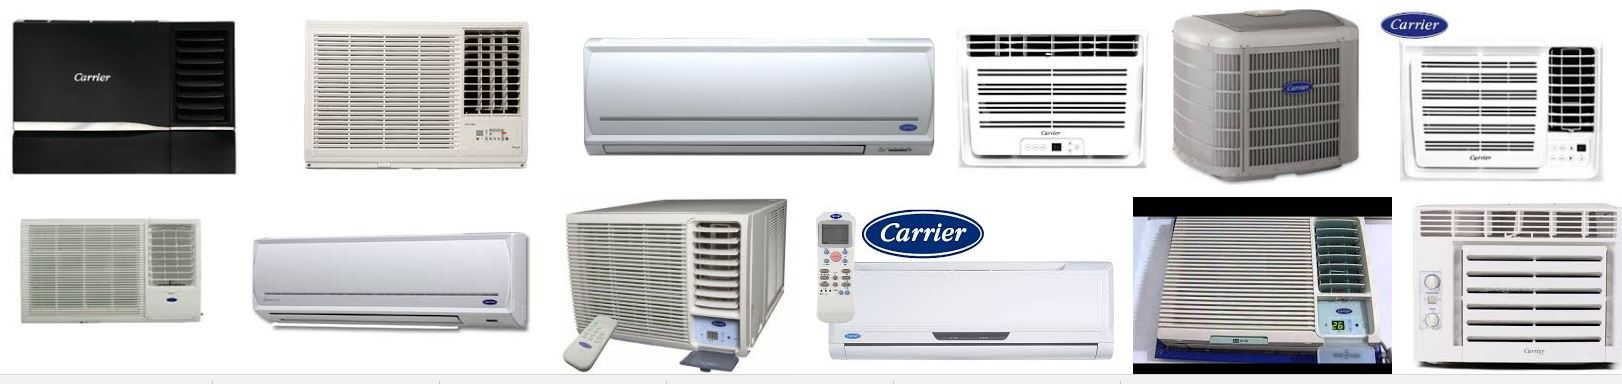 Carrier Airconditing